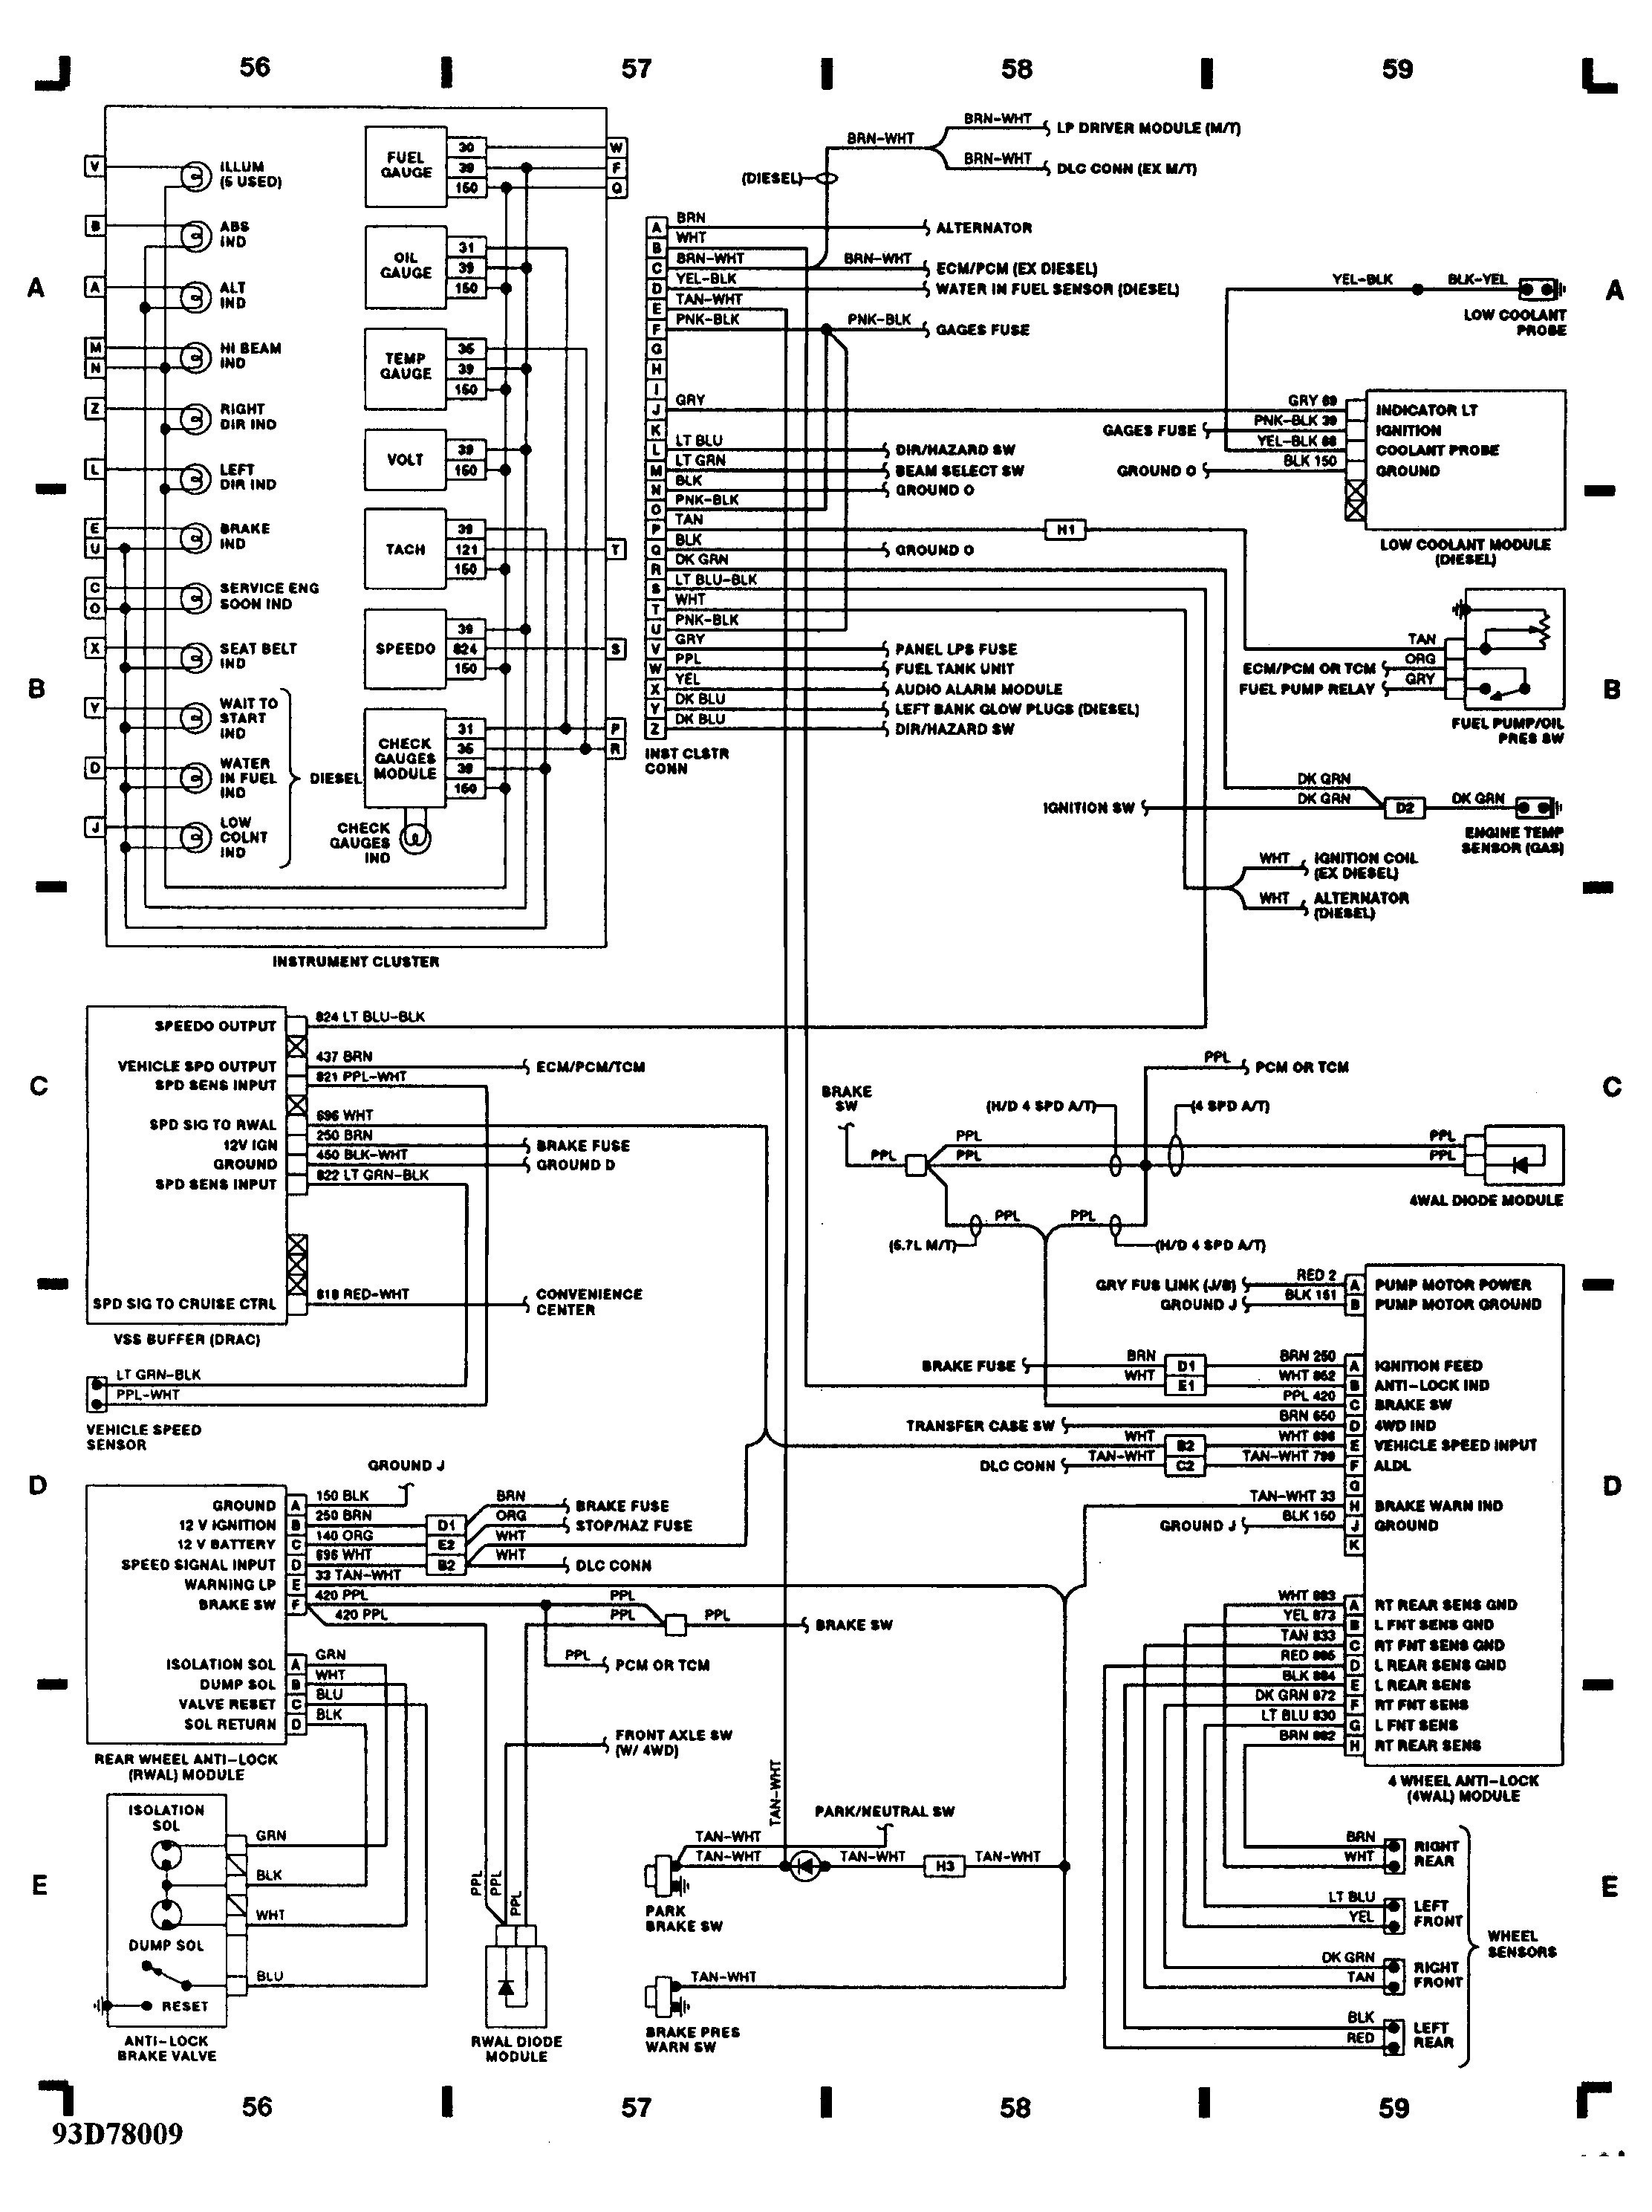 Wiring Diagram On 98 Oldsmobile Bravada Library Wire Harness Well Detailed Diagrams U2022 Rh Flyvpn Co 2002 Radio Intrigue